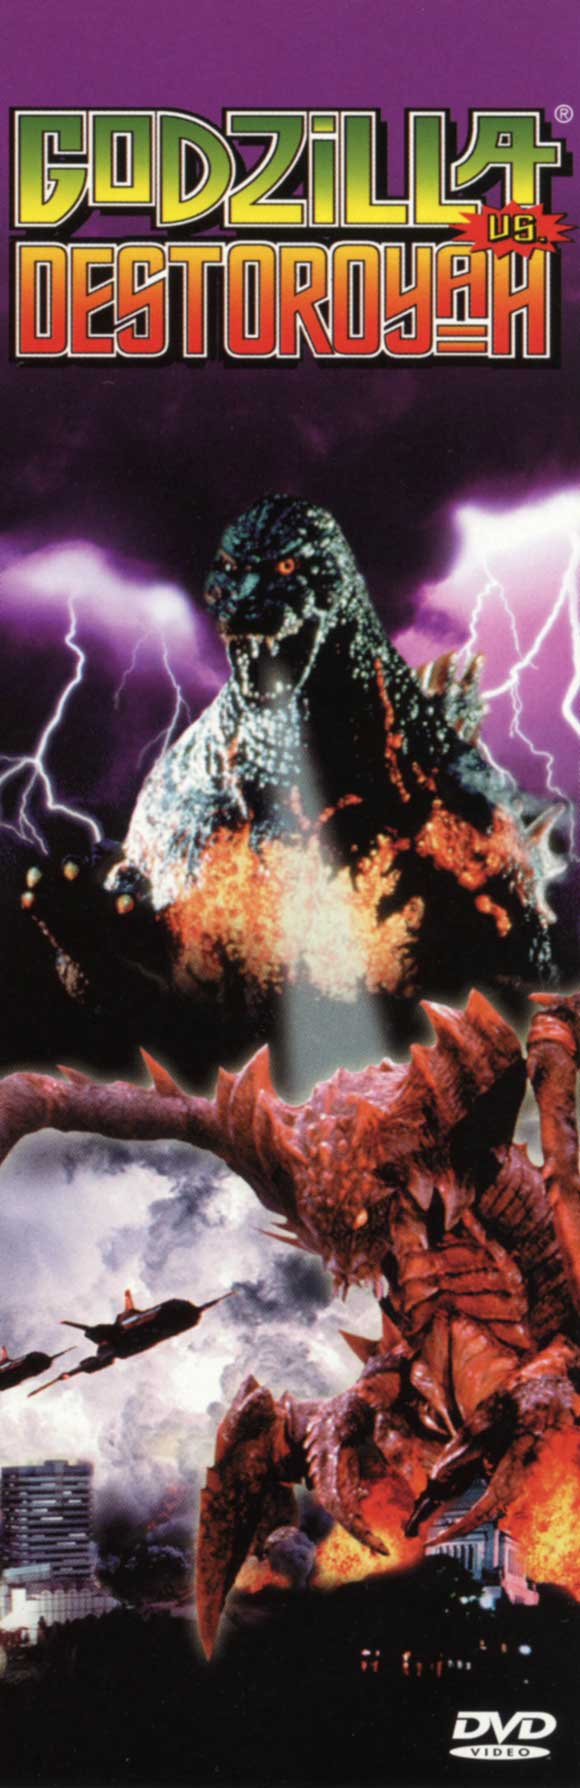 godzilla vs destroyer movie posters from movie poster shop